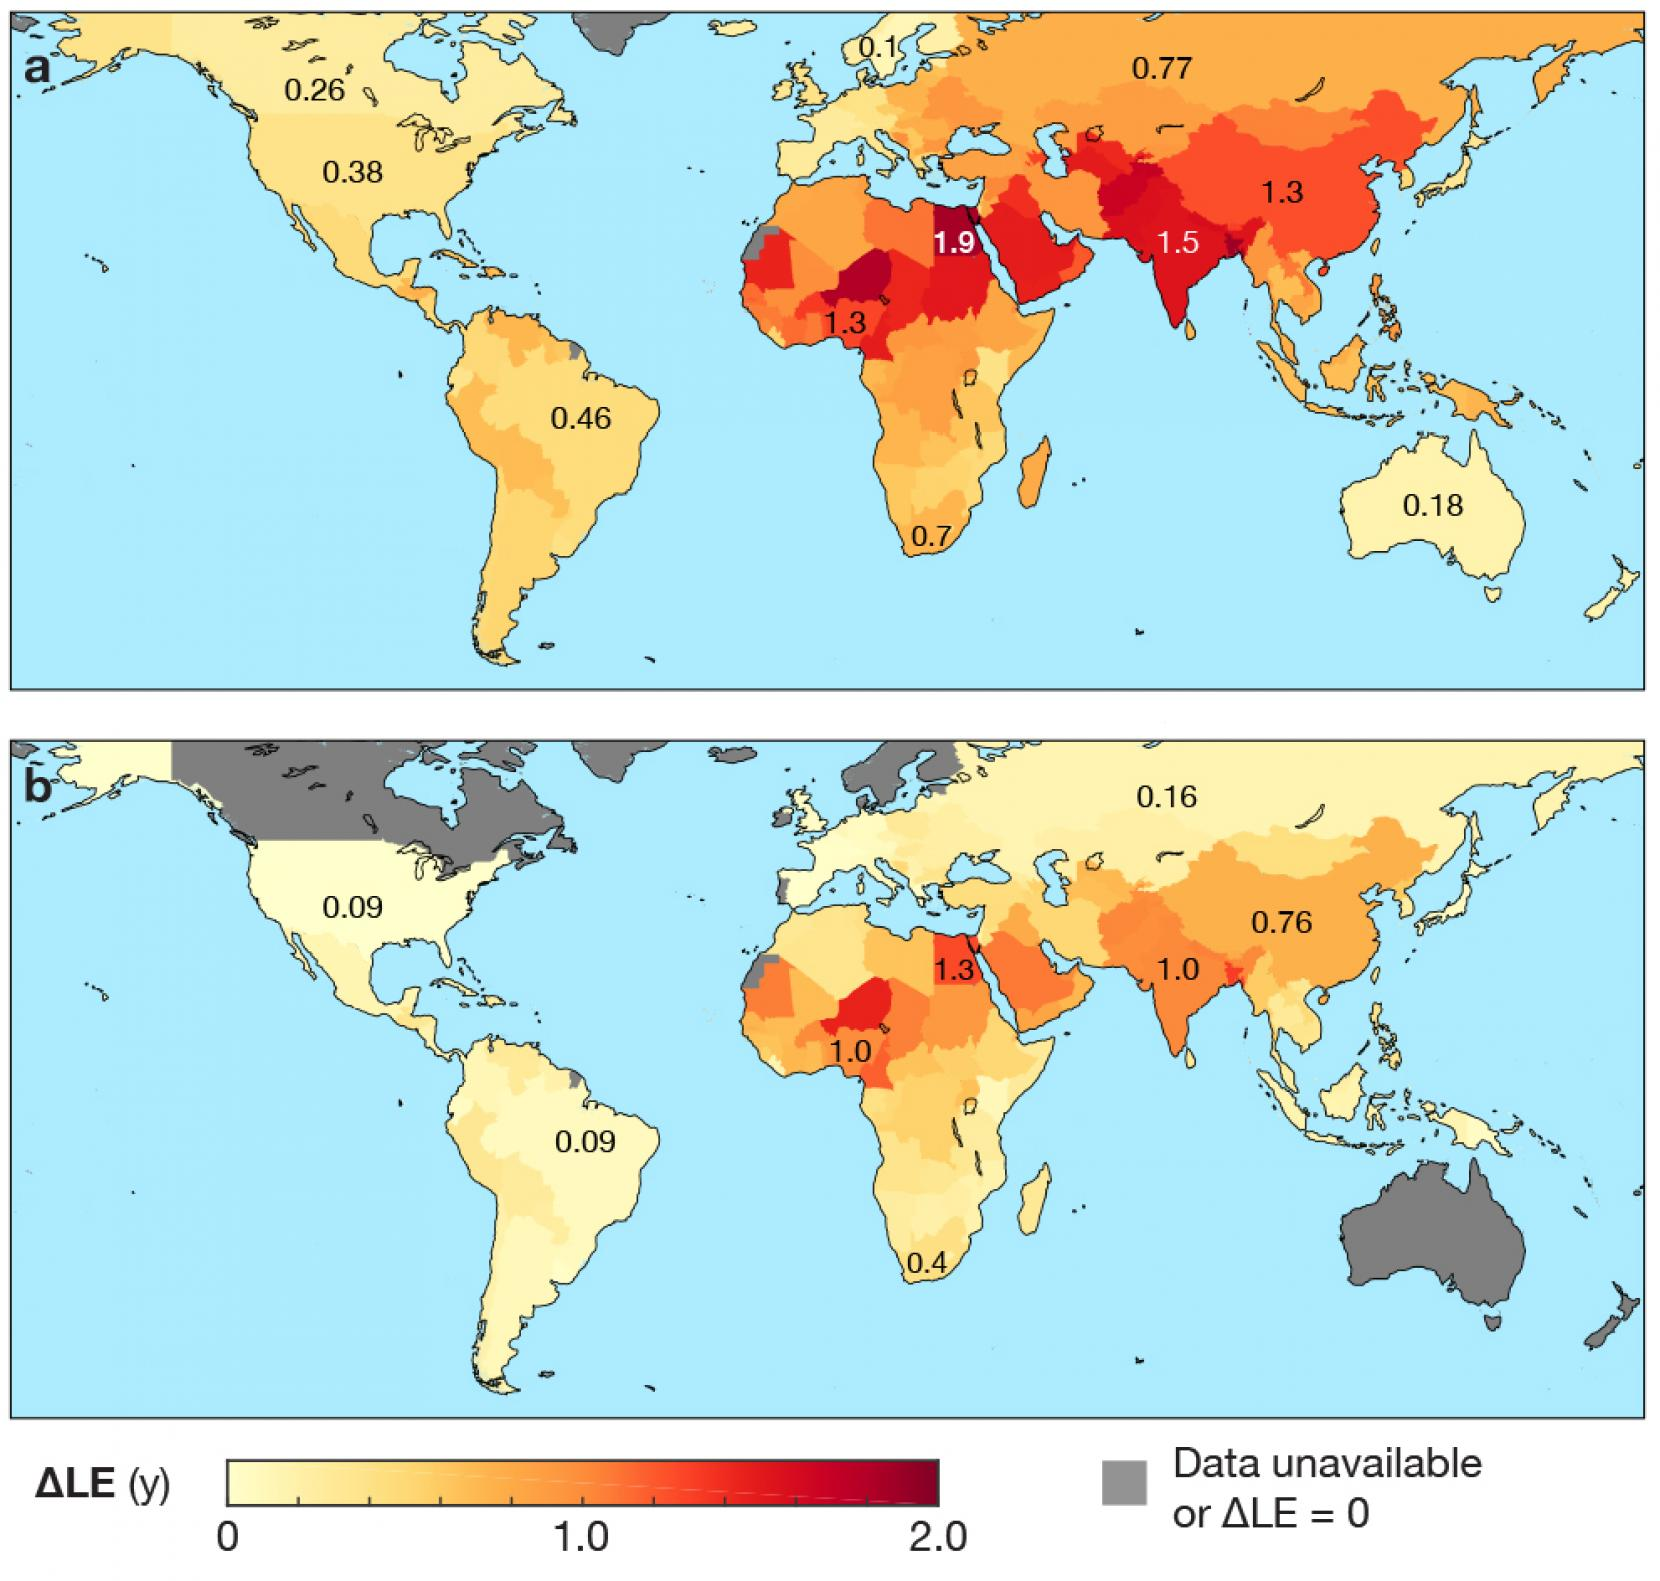 Upper panel a: How air pollution shortens human life expectancy around the world. Lower panel b: Gains in life expectancy that could be reached by meeting World Health Organization guidelines for air quality around the world. (Image: University of Texas at Austin)